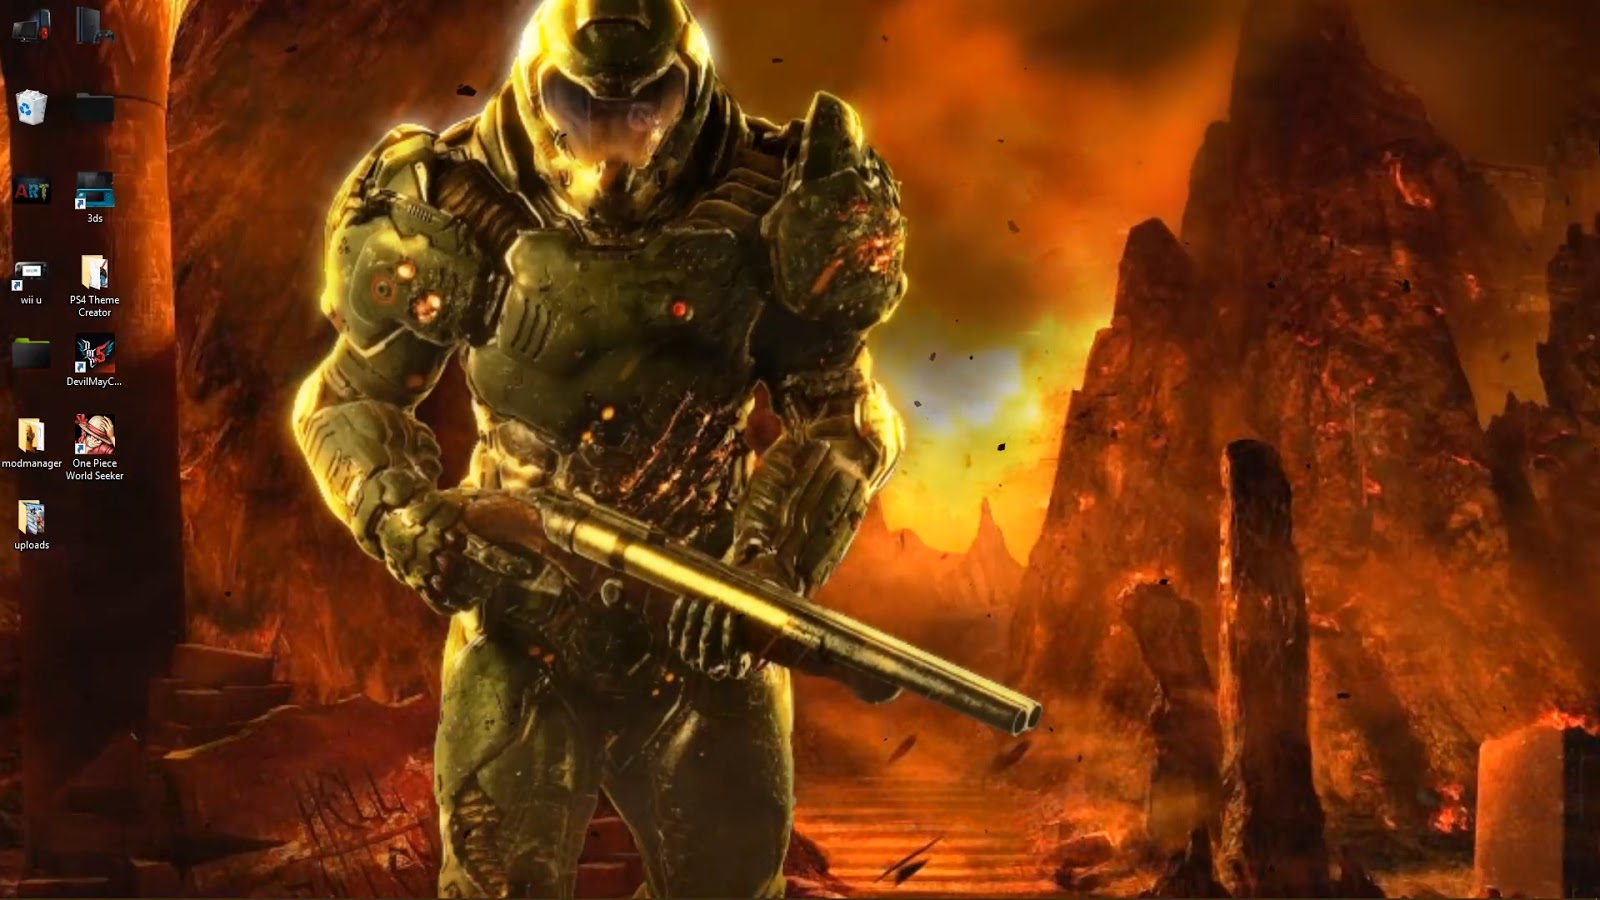 Doom Guy live wallpaper with Sound free download - wallpaper